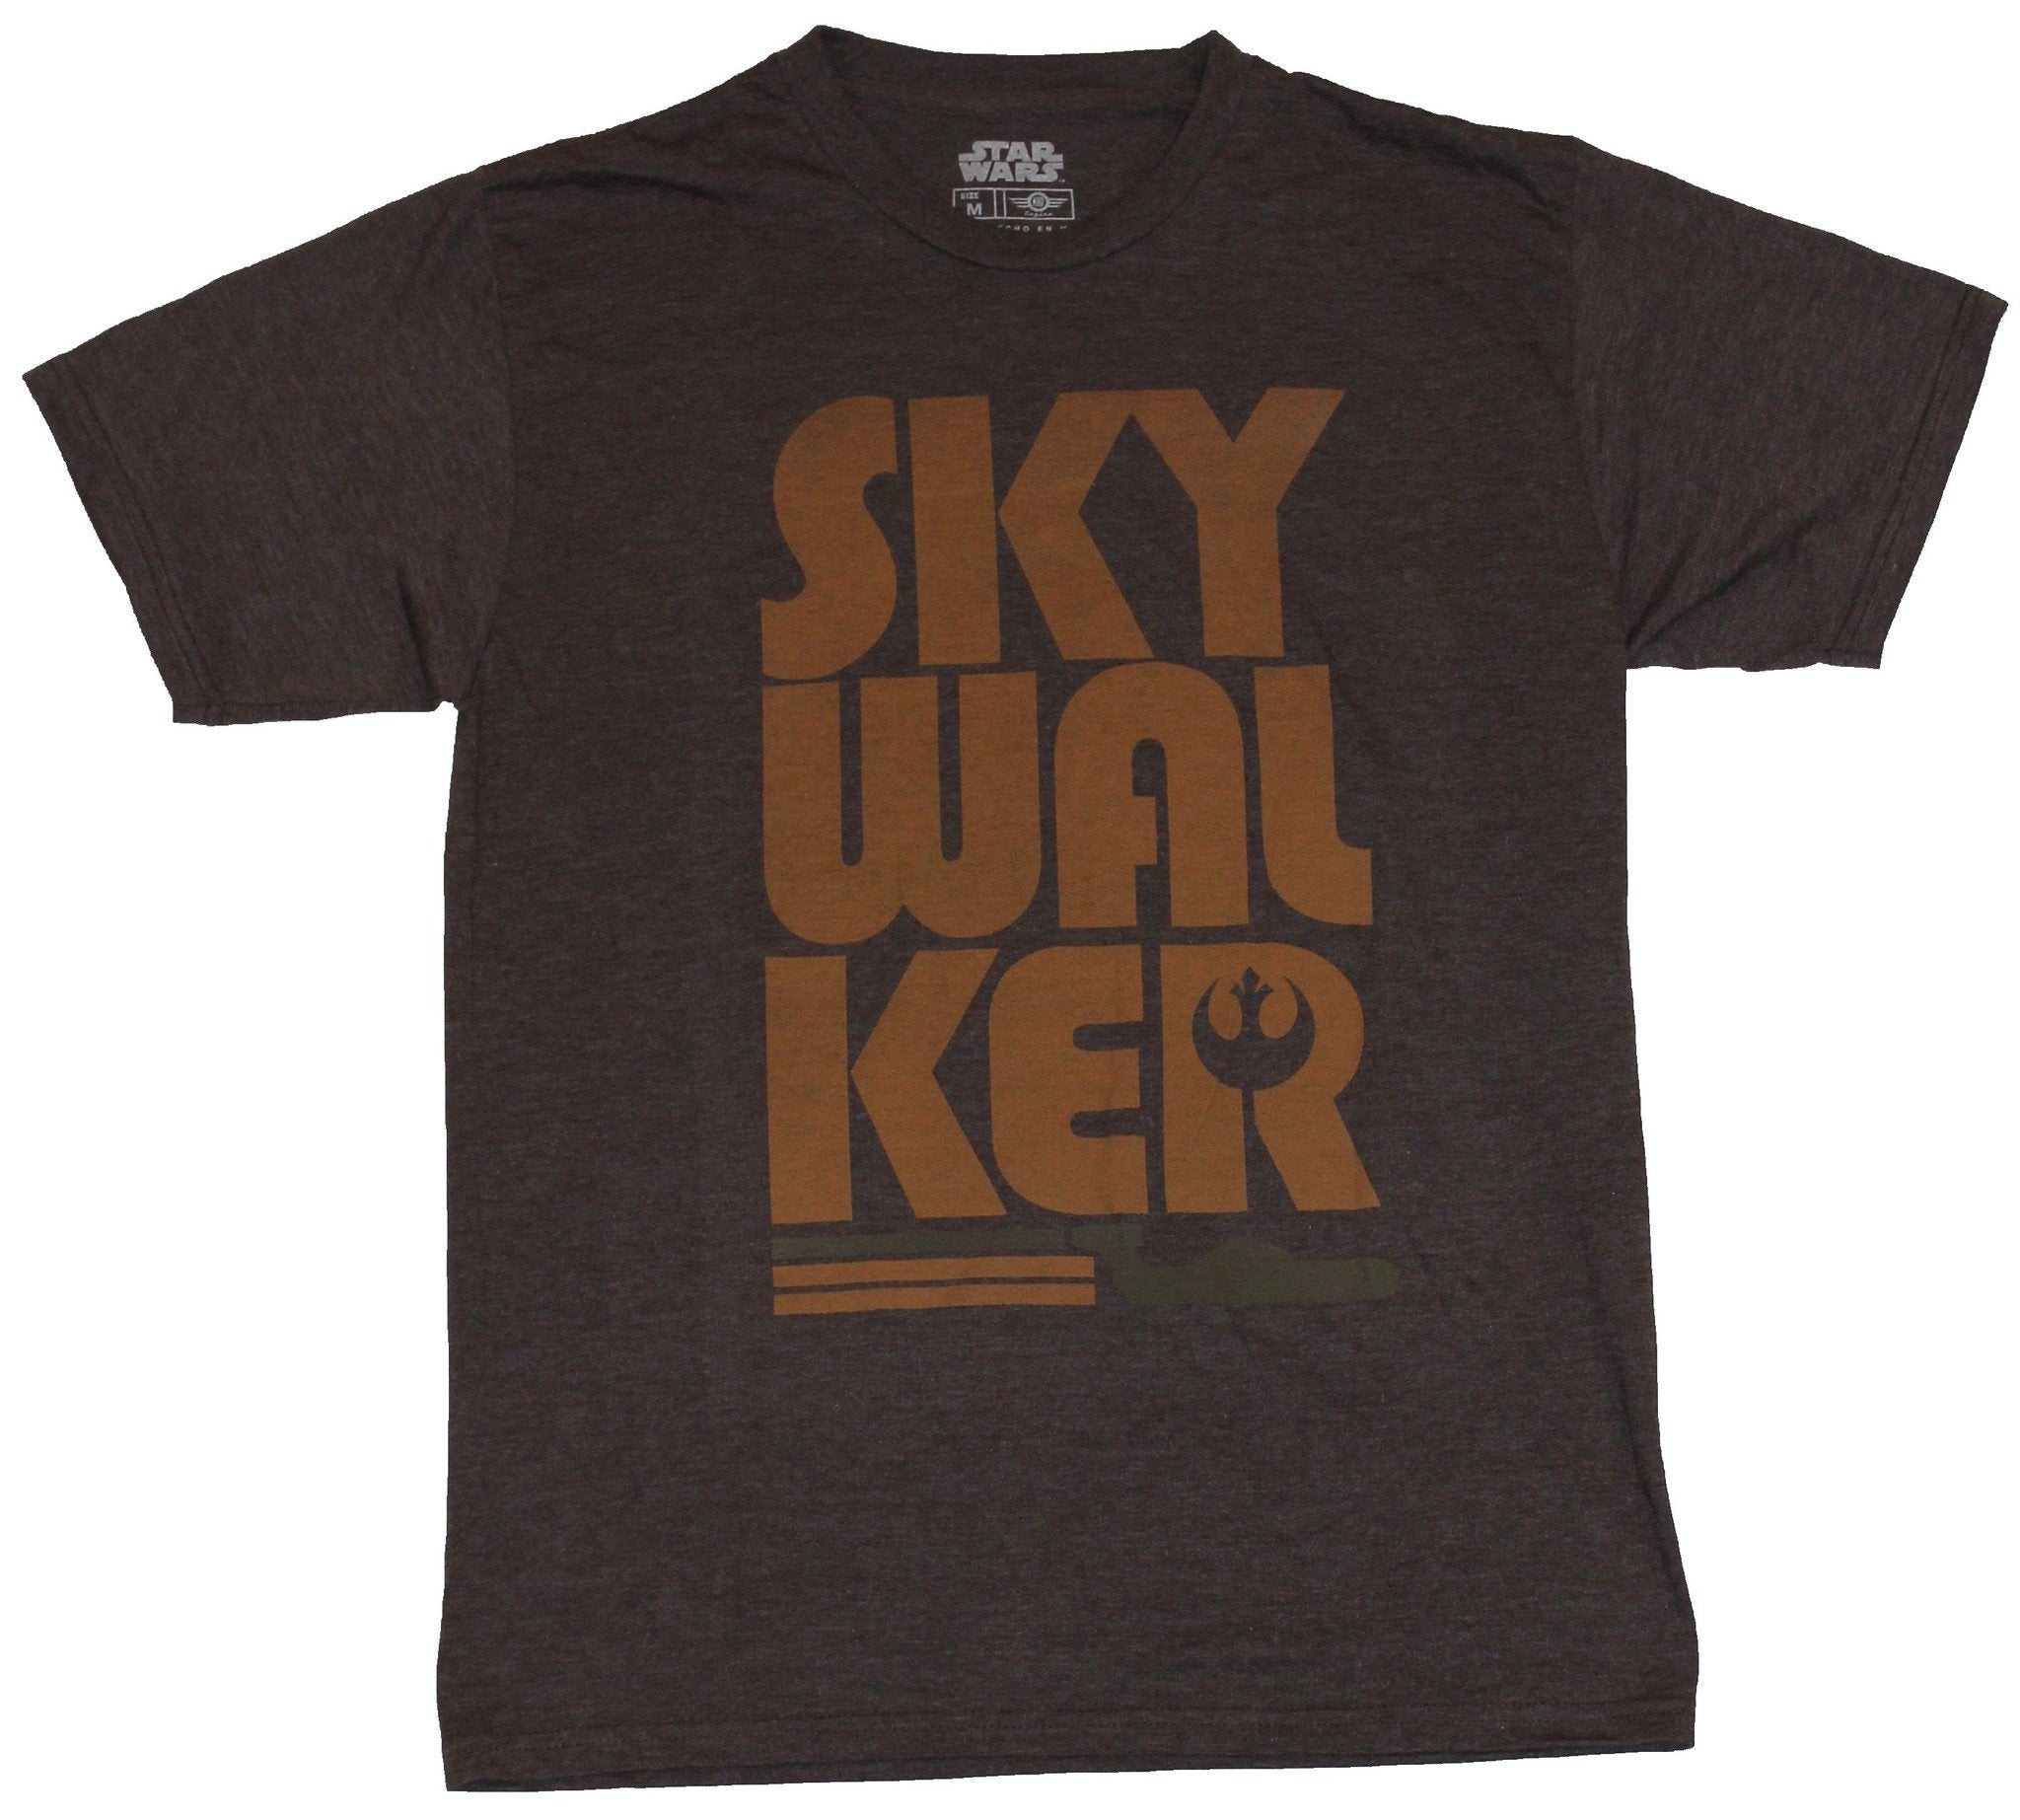 Star Wars Mens T-Shirt - Skywalker Big Letter Landspeeder Logo Image